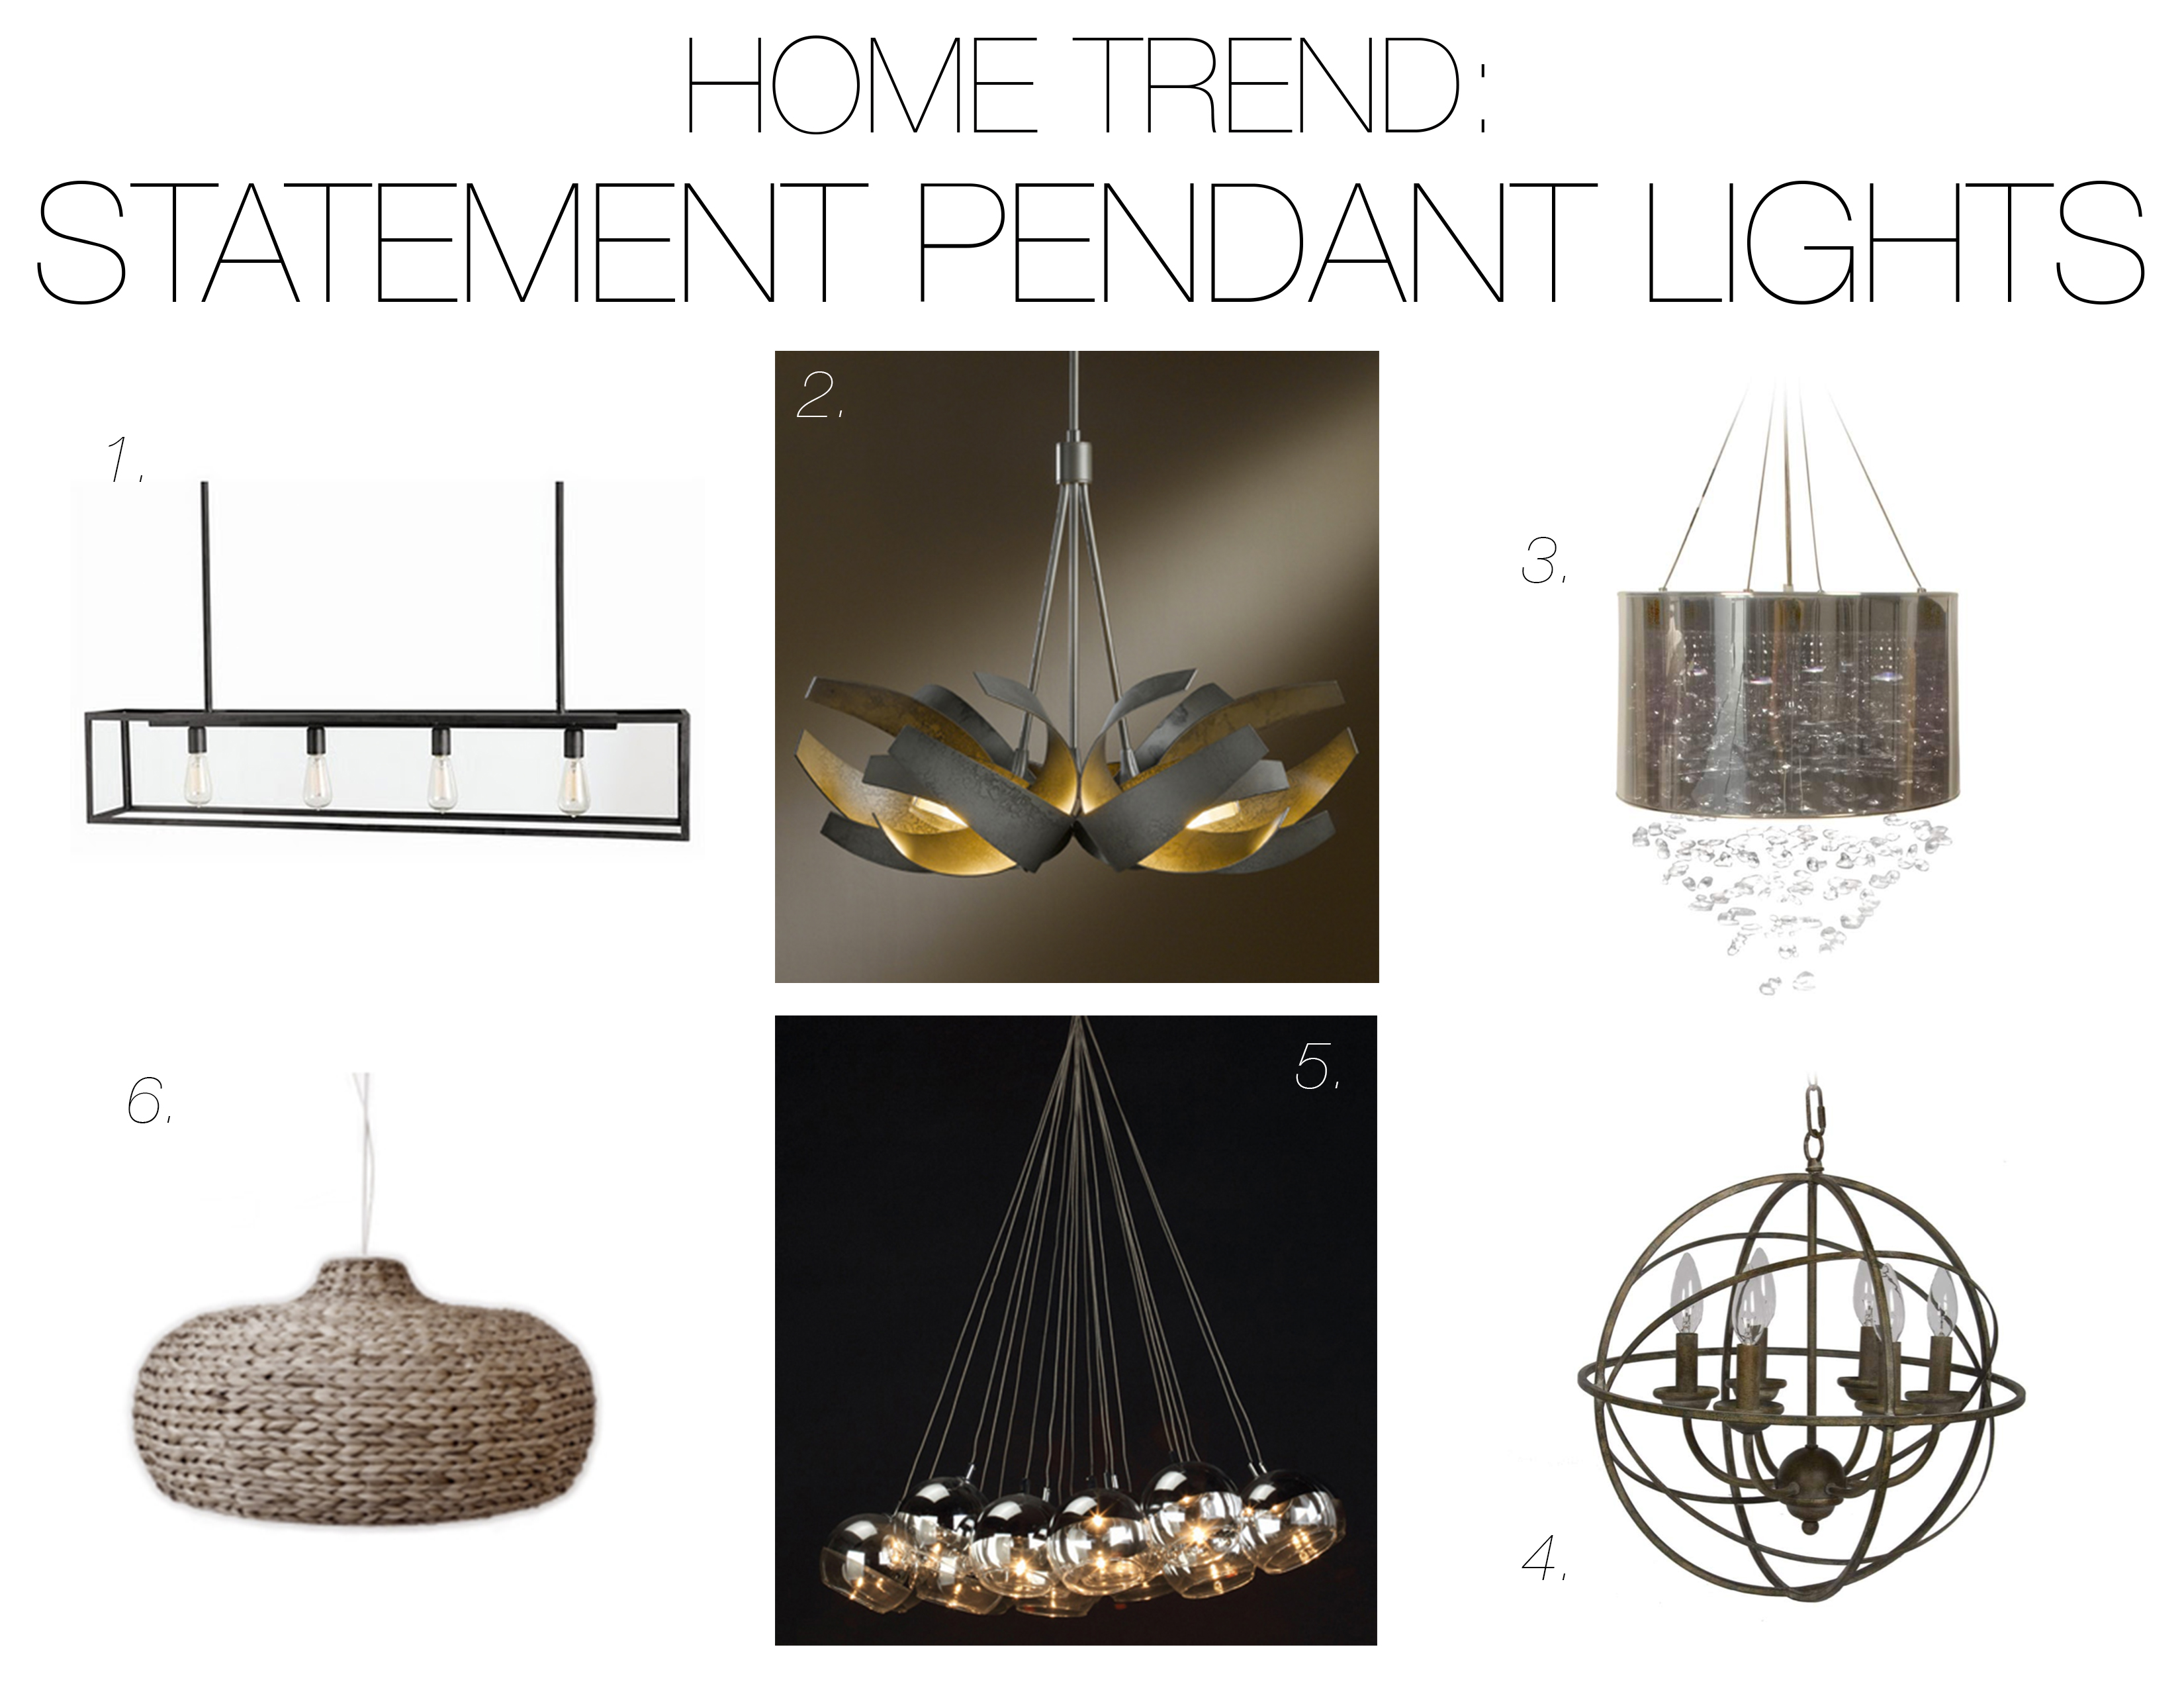 Home Trend Statement Pendant Lights Mountain Home Decor